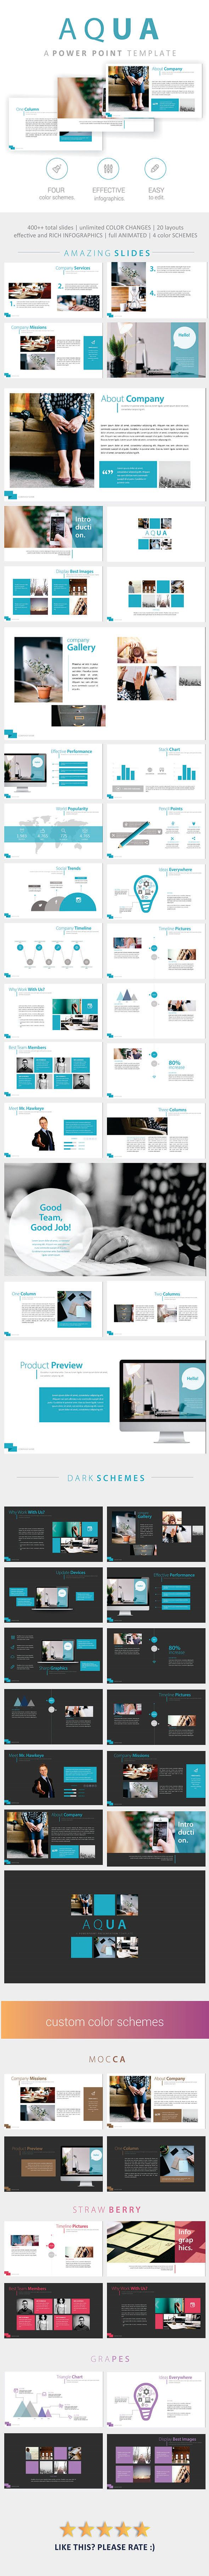 Aqua PowerPoint Presentation Template #design #slides Download…